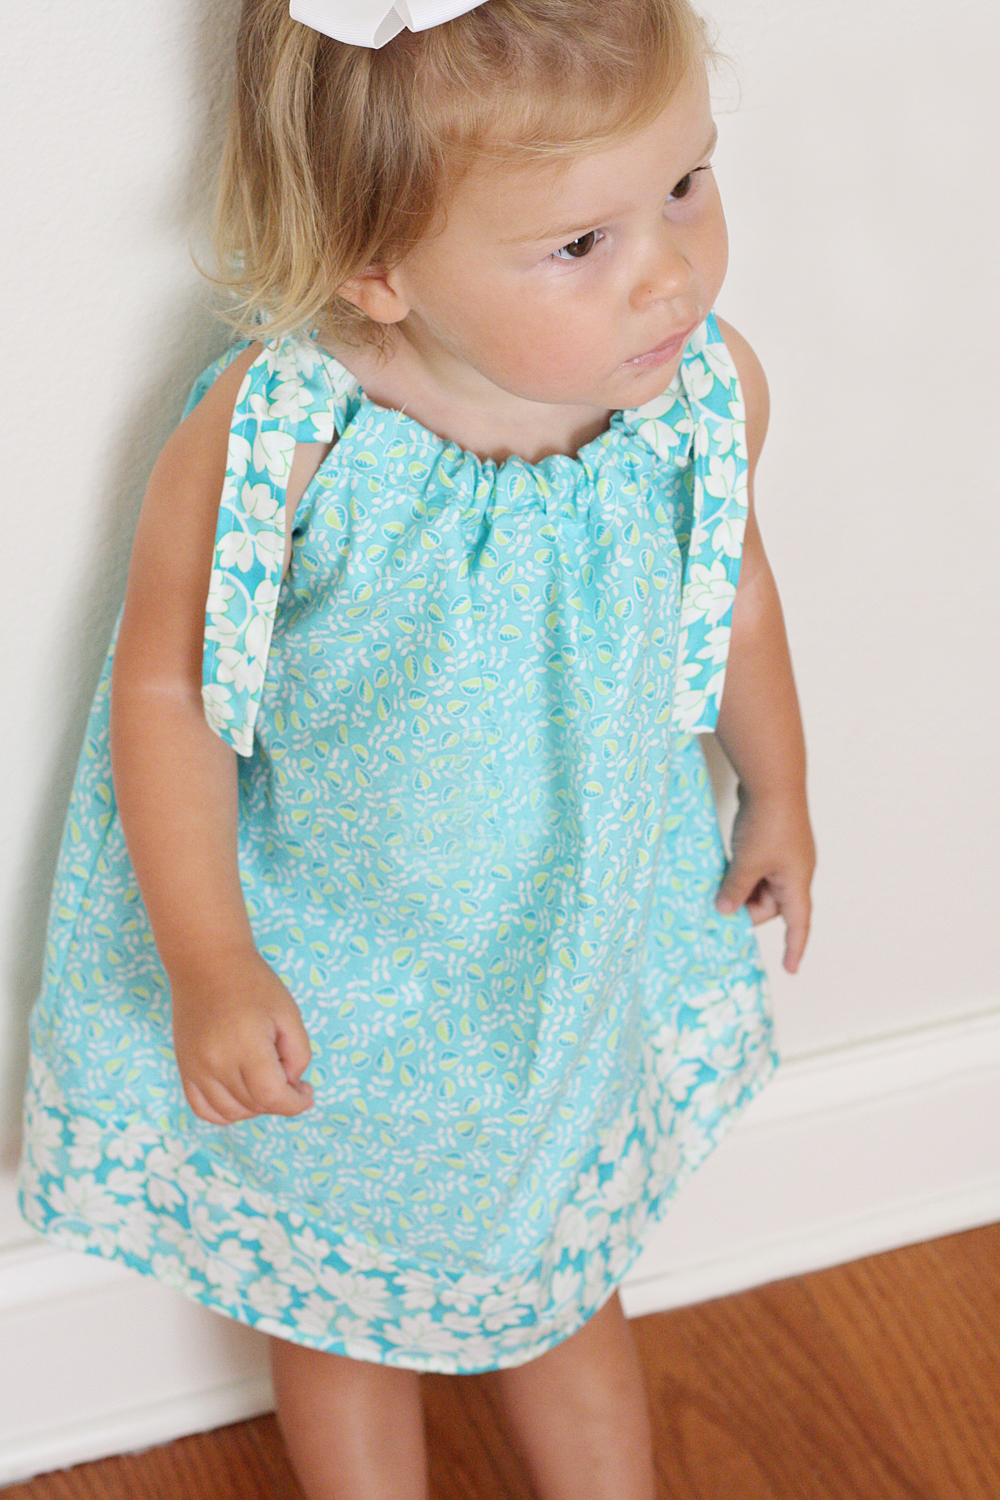 Fashion: For Little Girls | Dresses by Claudia's Clothing | Ashlee Proffitt